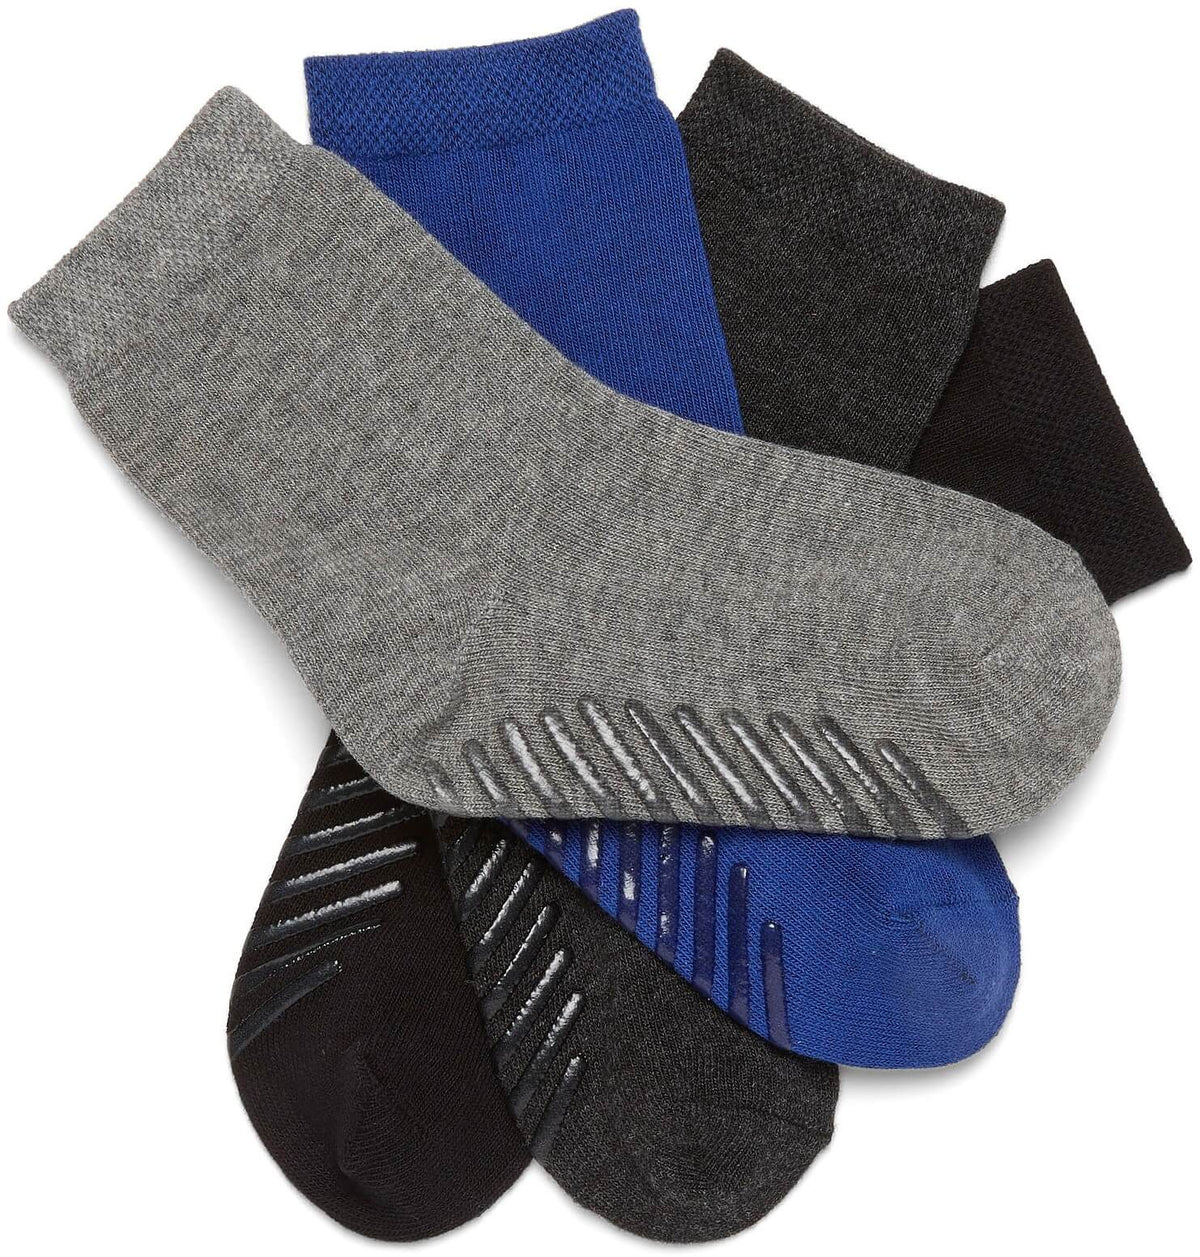 Grip Socks for Toddlers & Kids 4-6 Years 4-Pack - Gripjoy Socks